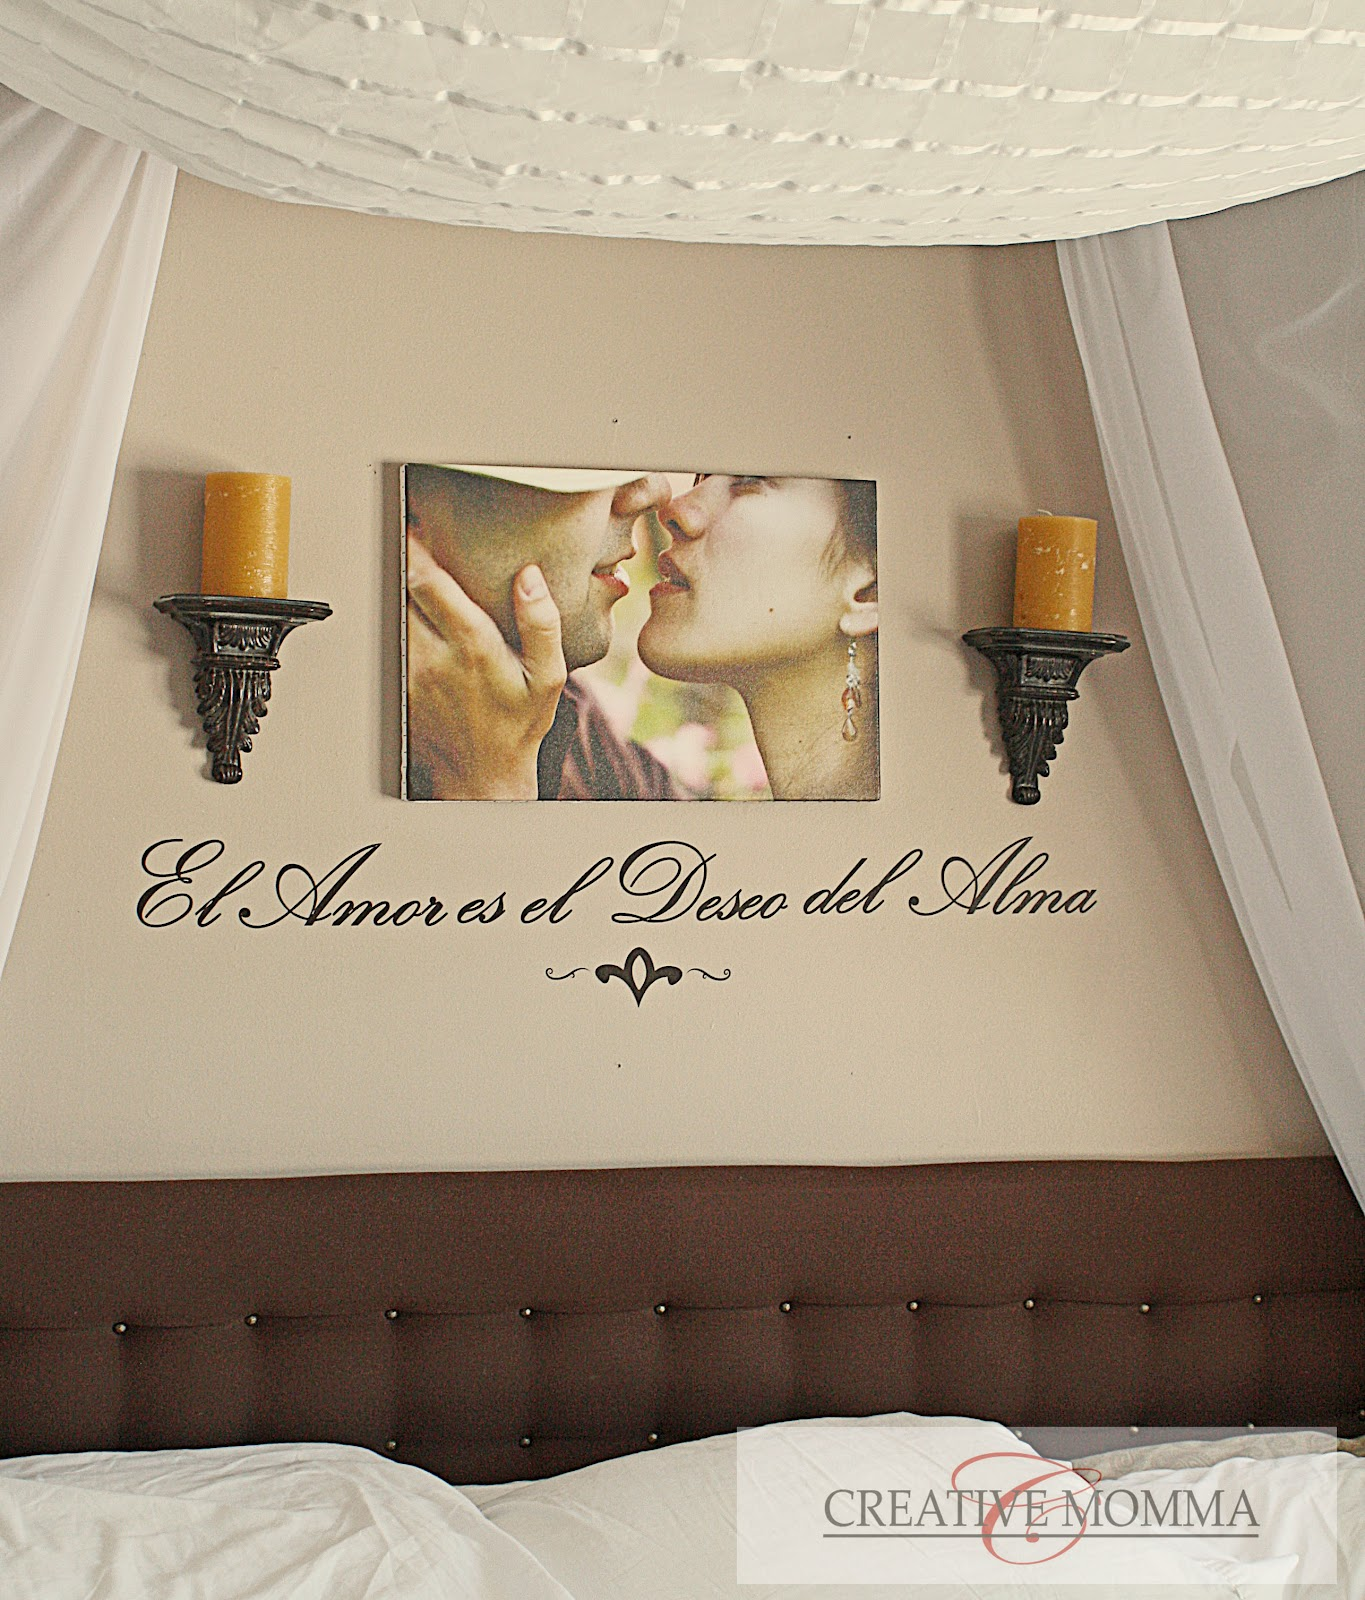 Bedroom Wall Designs For Couples : Creative mommas purple bedroom wall